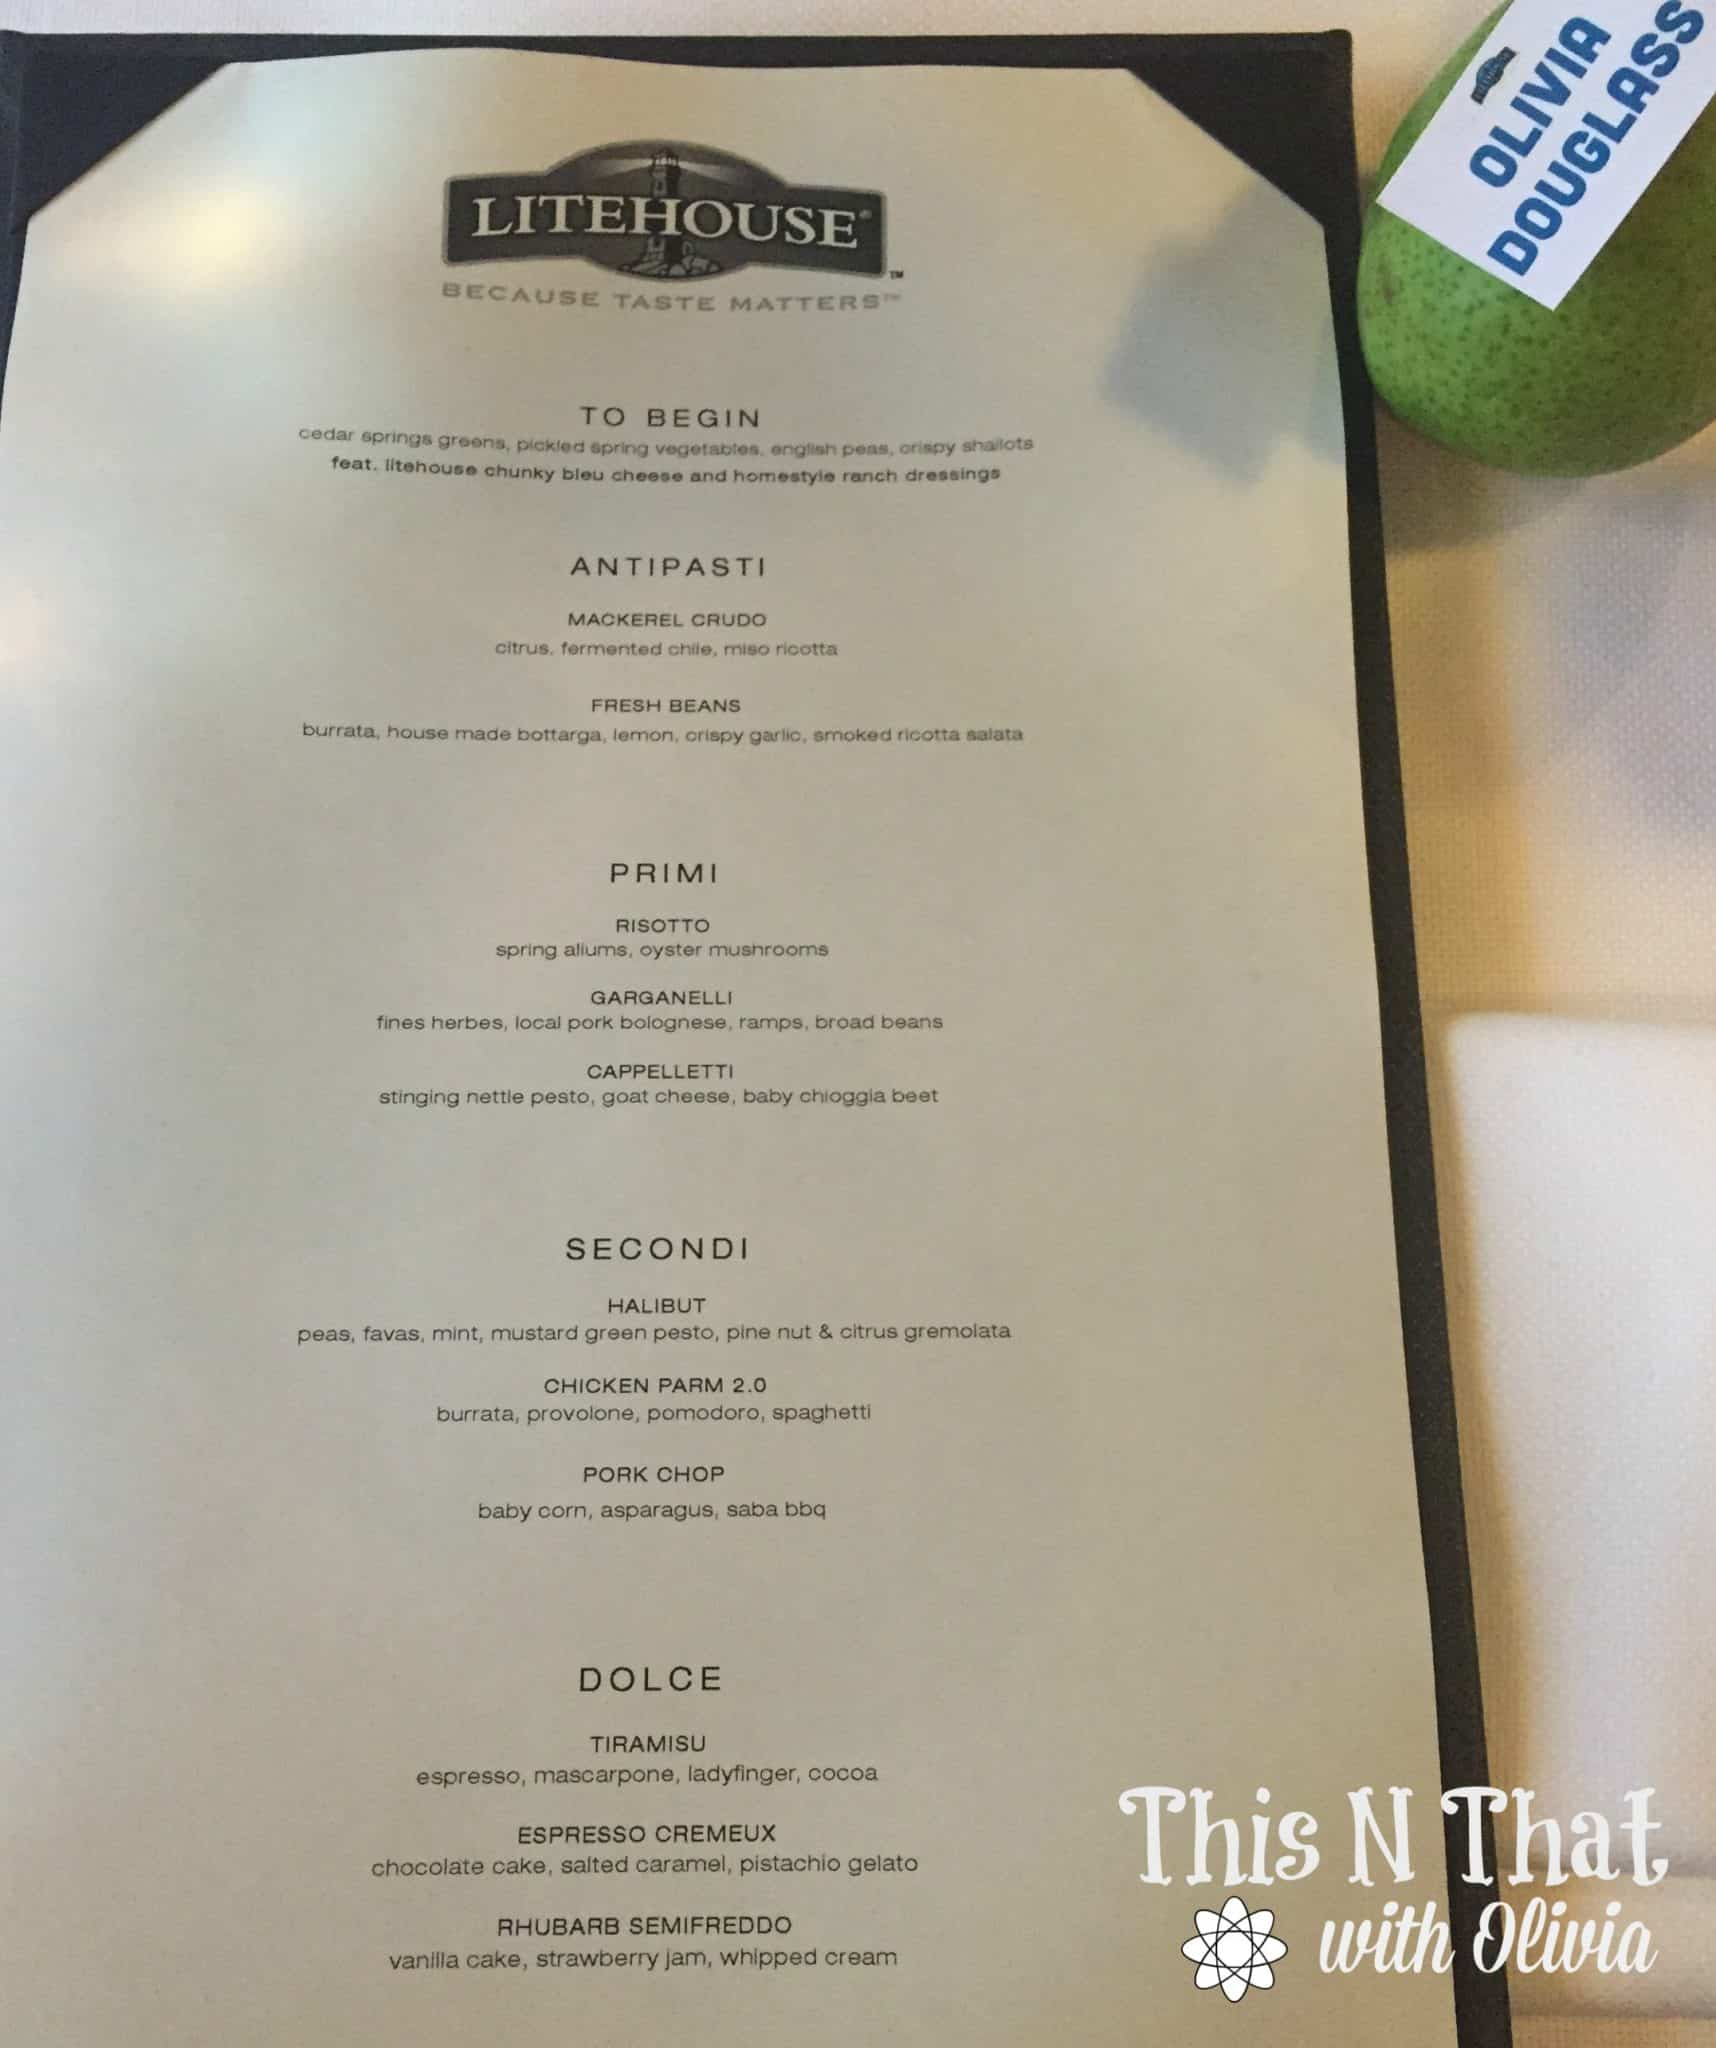 #SeeTheLite Event with @LitehouseFoods | ThisNThatwithOlivia.com